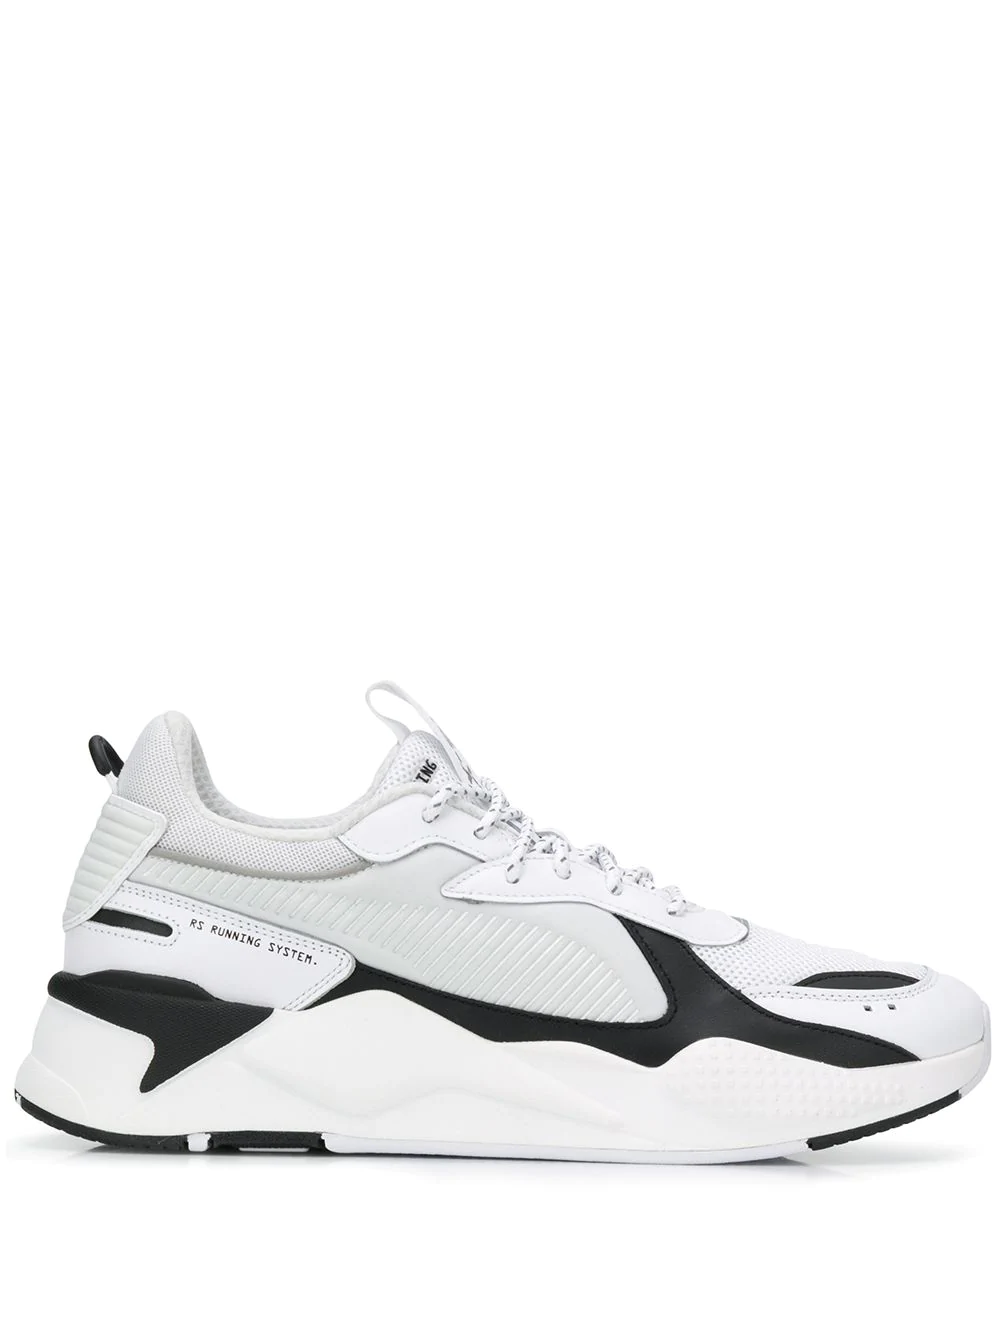 Puma Rs-x Sneakers - White